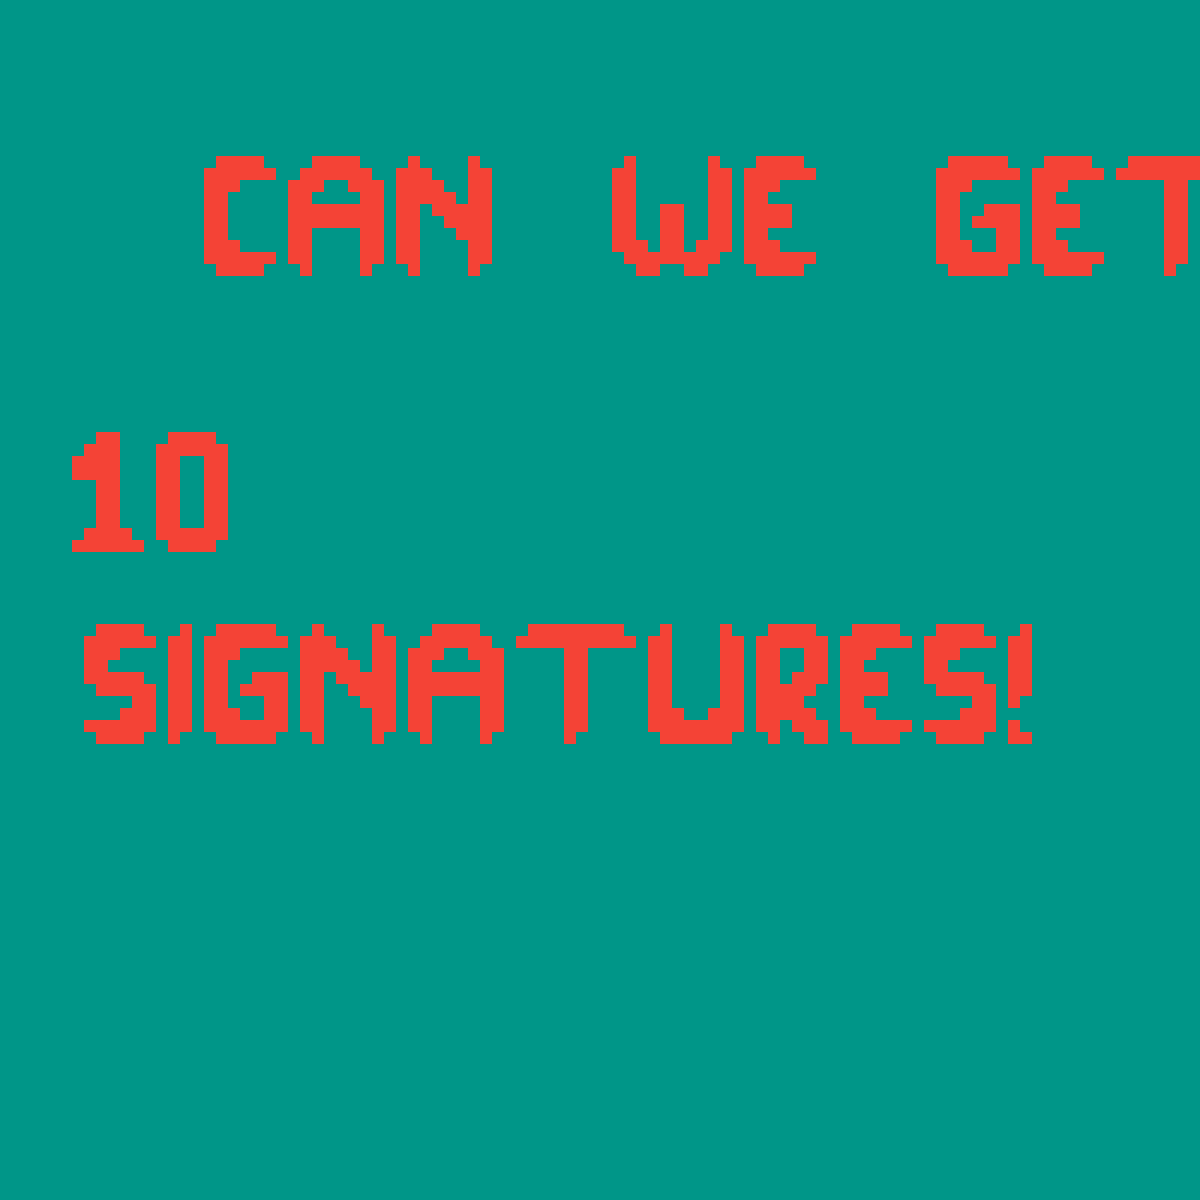 10 signatures by Laz3r4lif3